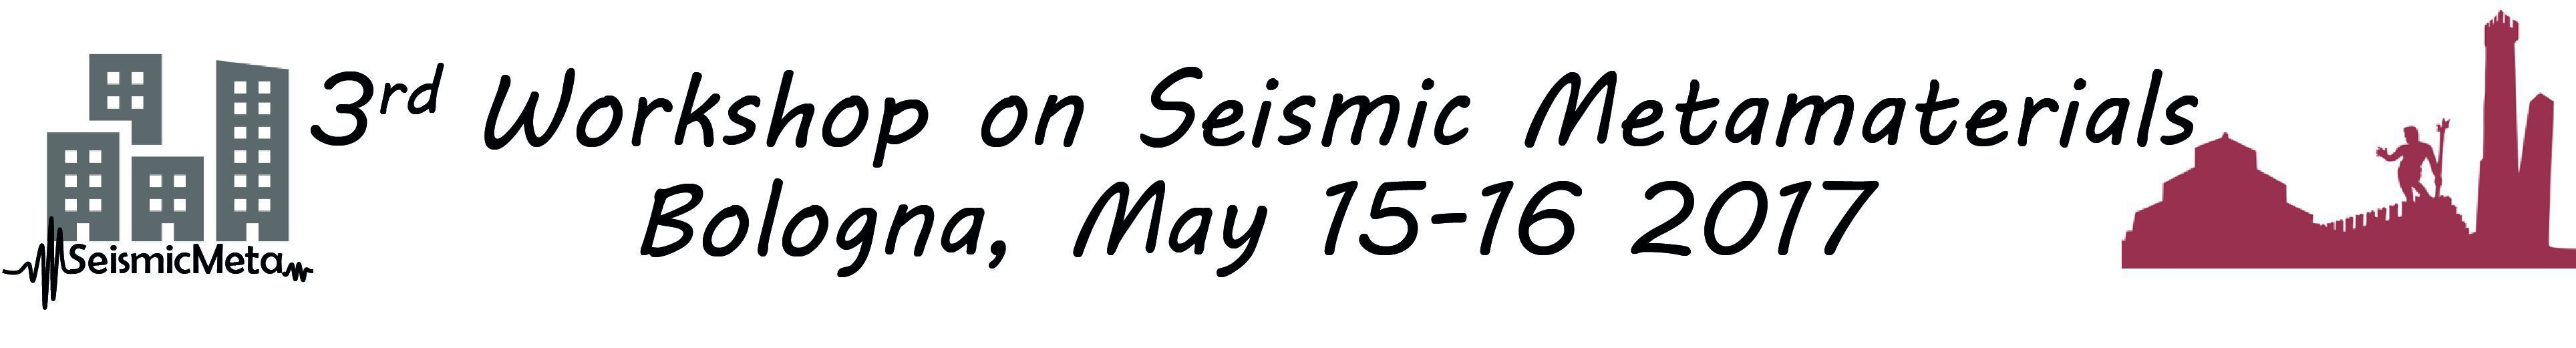 3rd workshop on Seismic Metamaterials